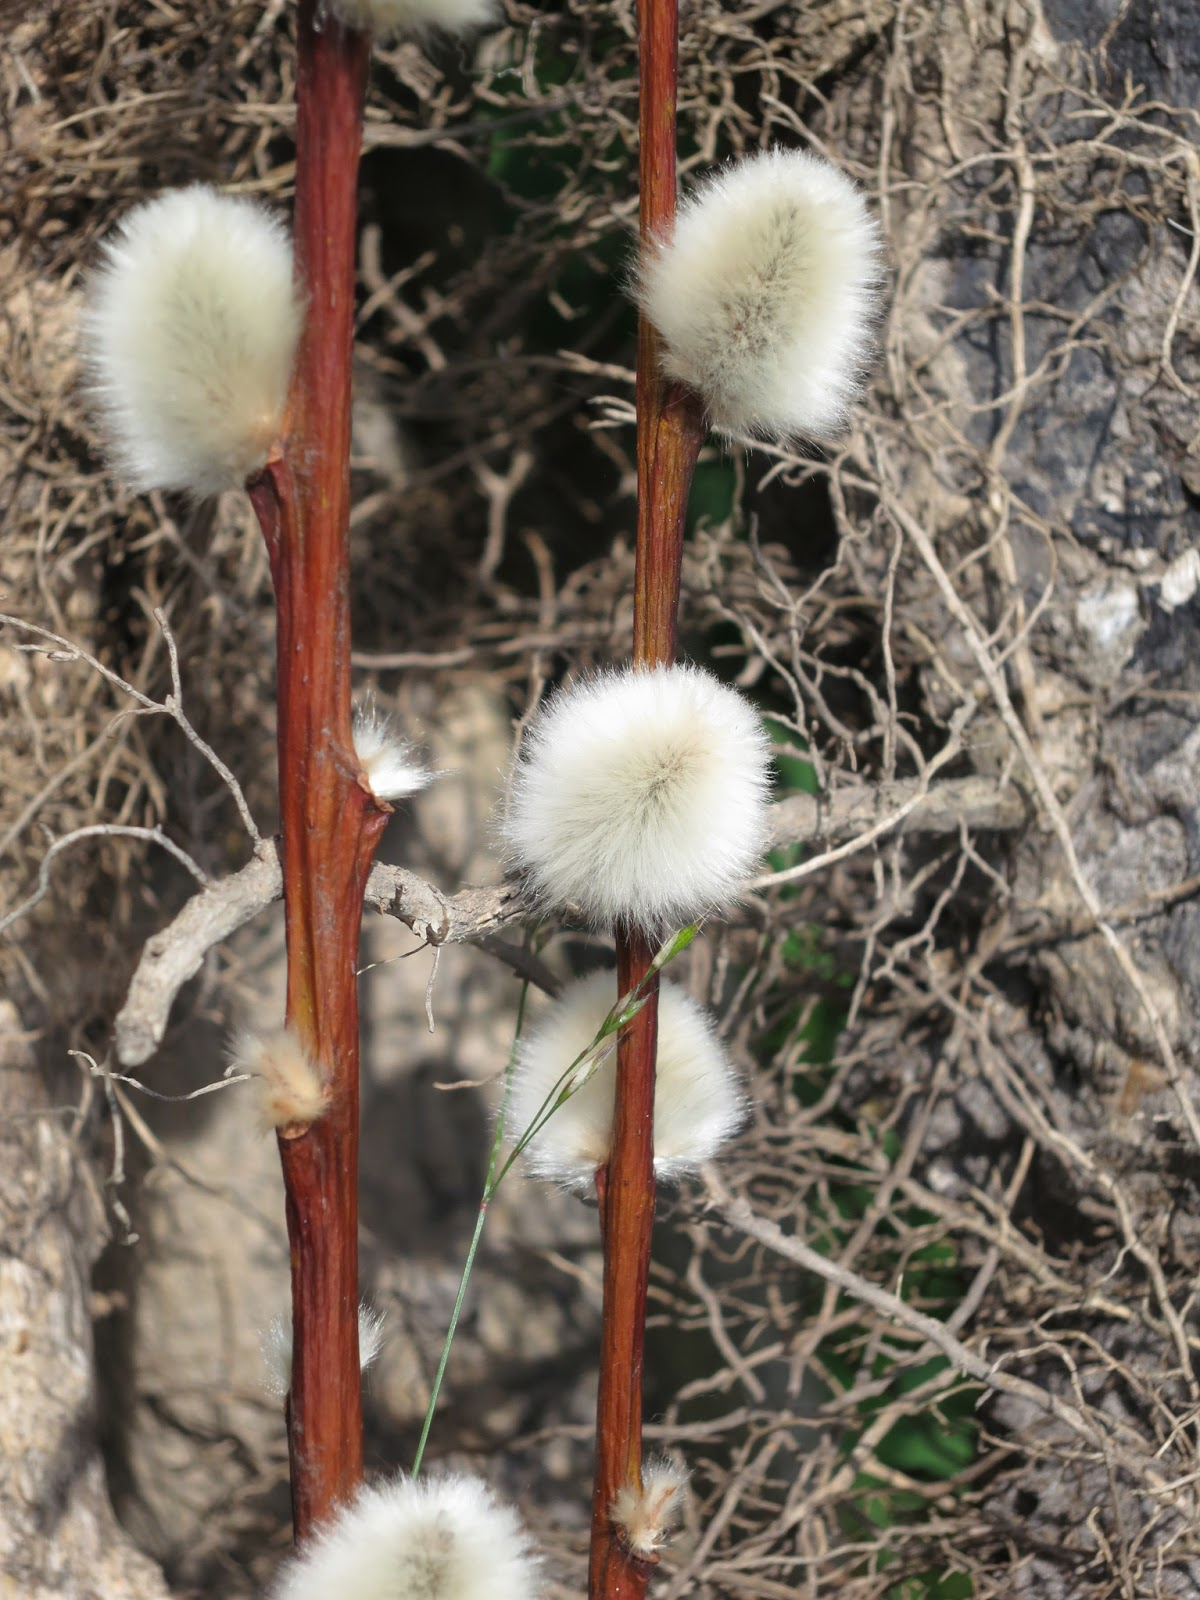 Large white, fluffy seedheads on brown stalks